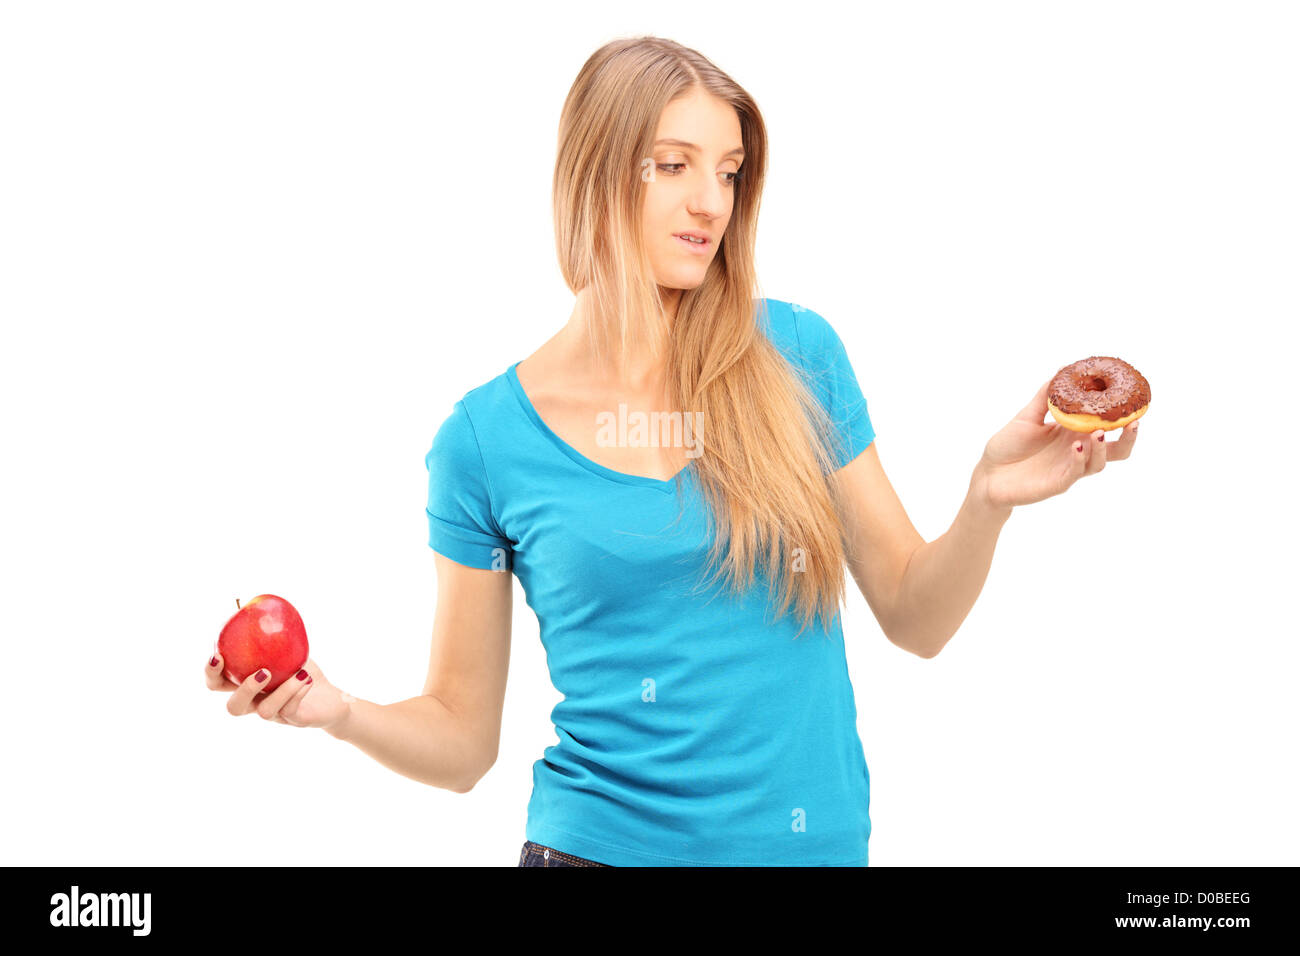 Doubtful woman holding an apple and donut trying to decide which one to eat - Stock Image